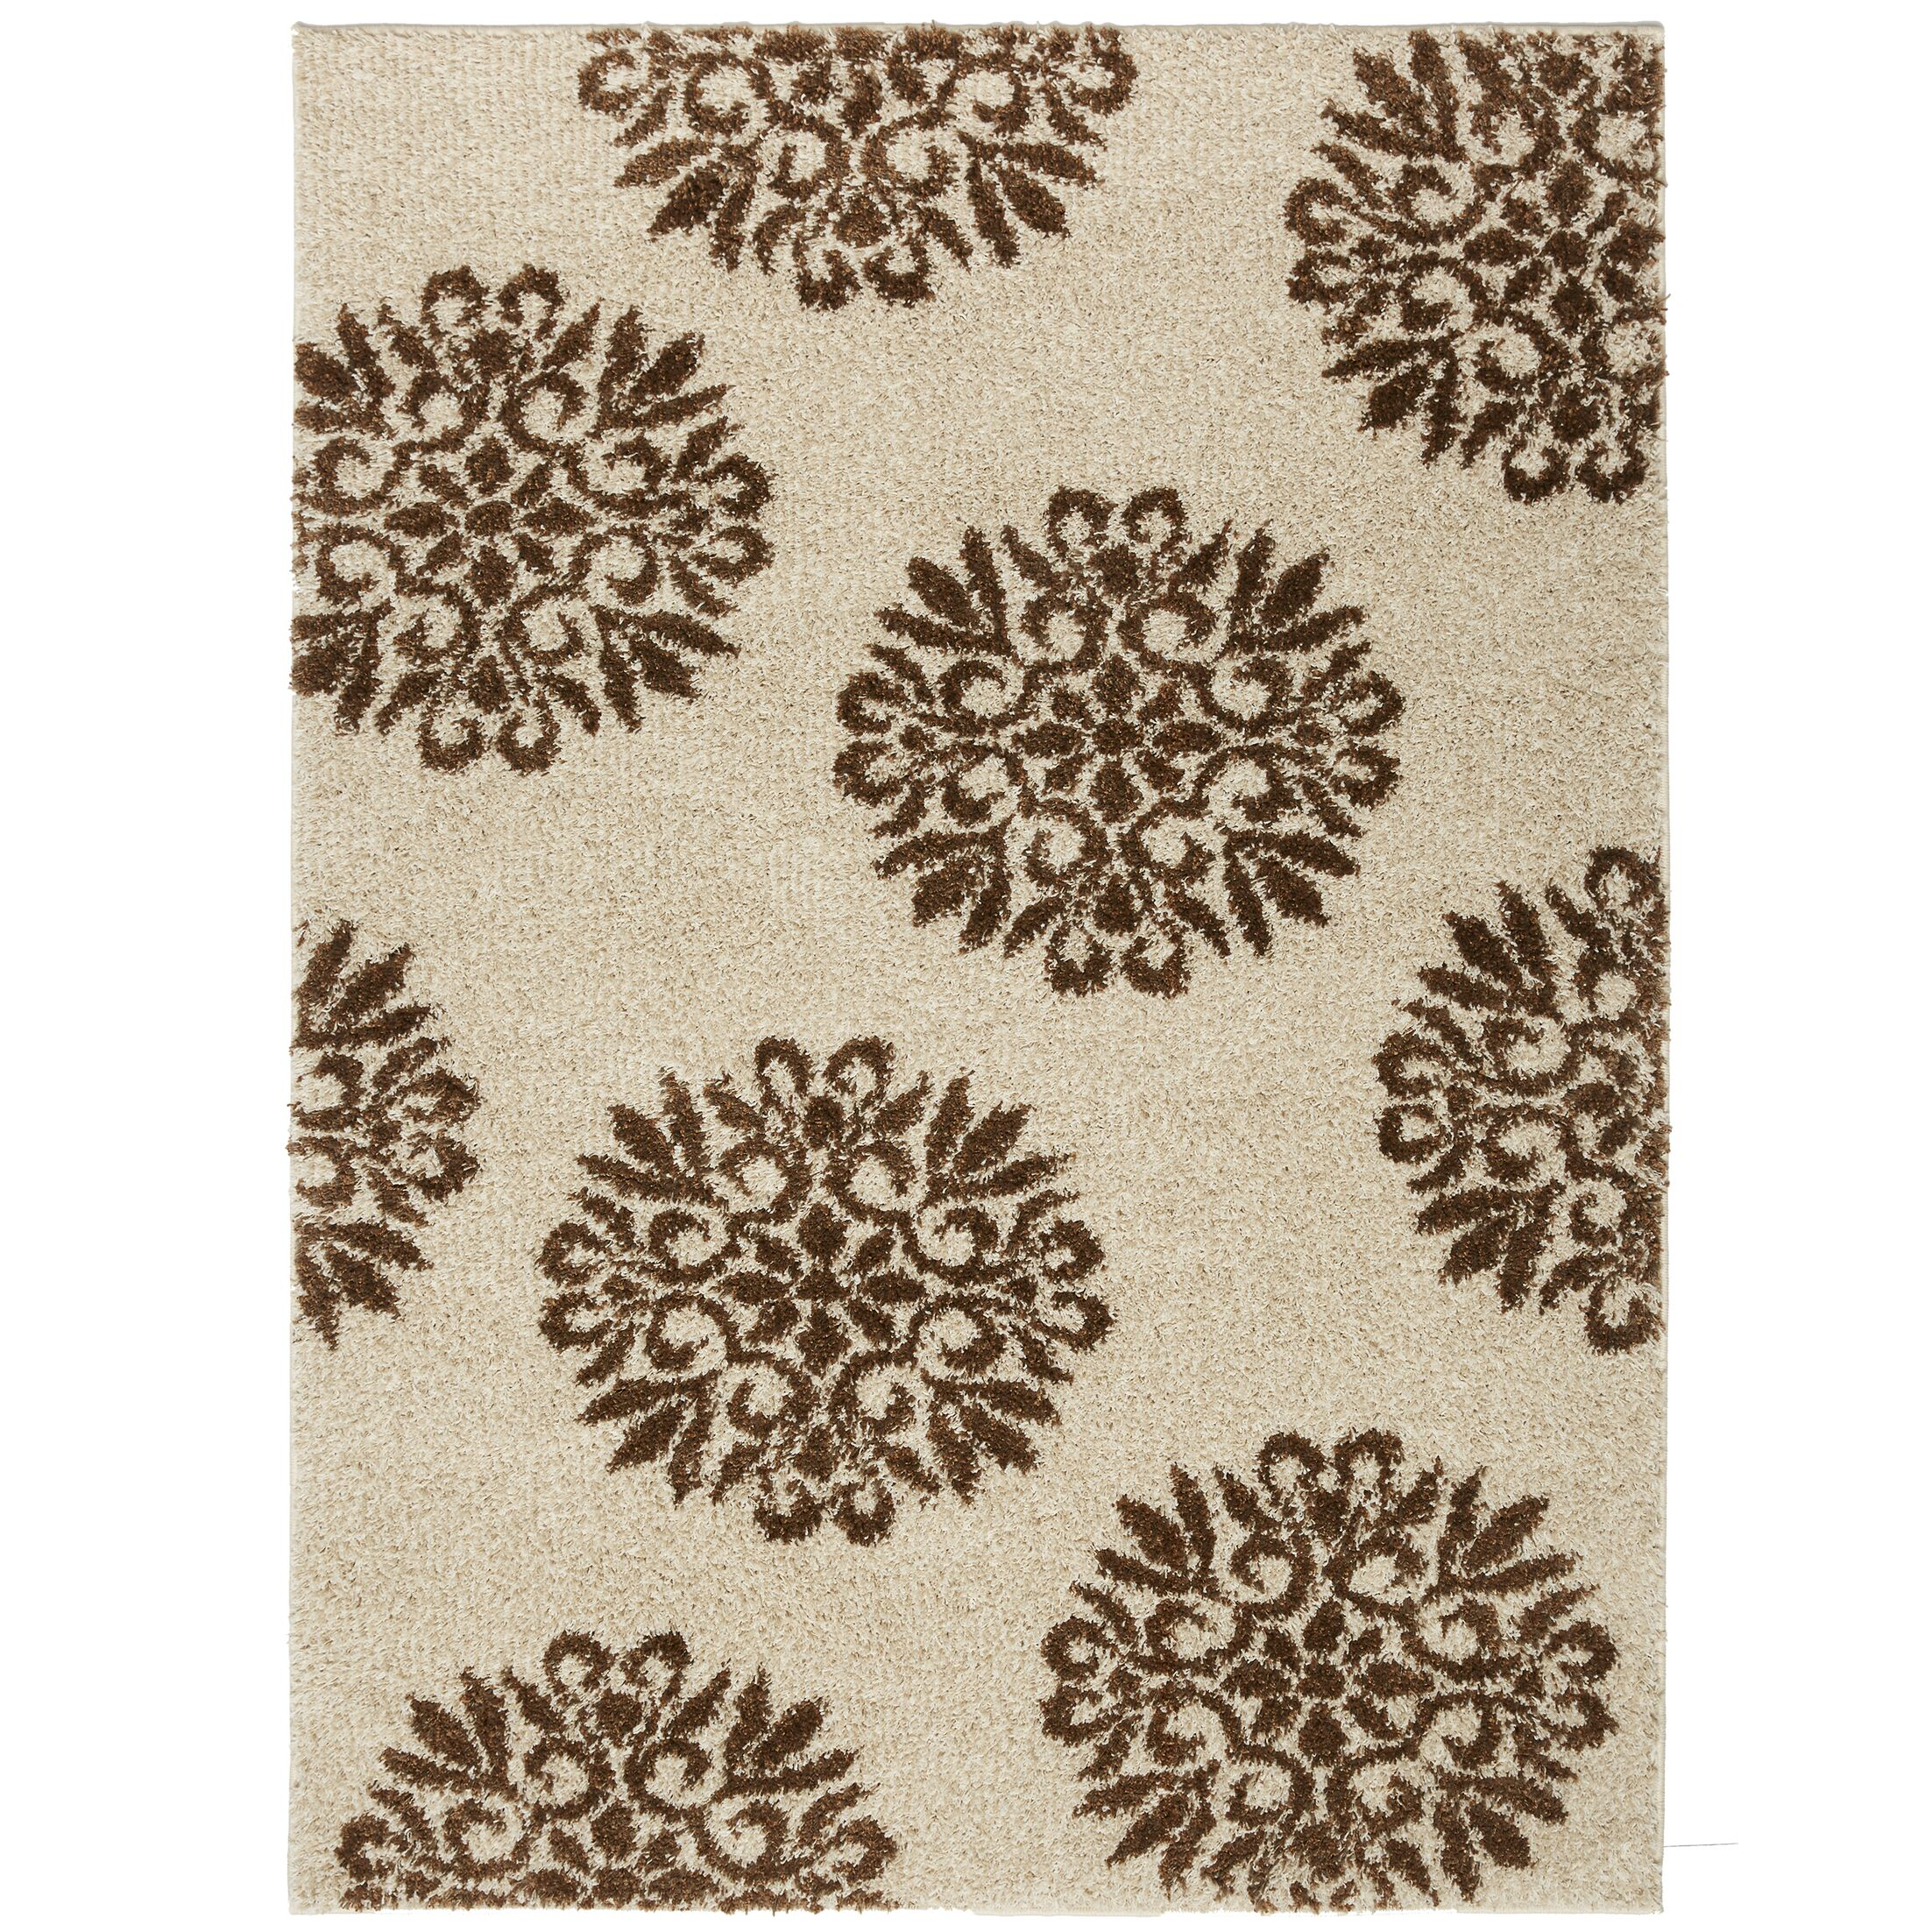 Coney Medallions Cream/Rust Area Rug Rug Size: Rectangle 10' x 14'